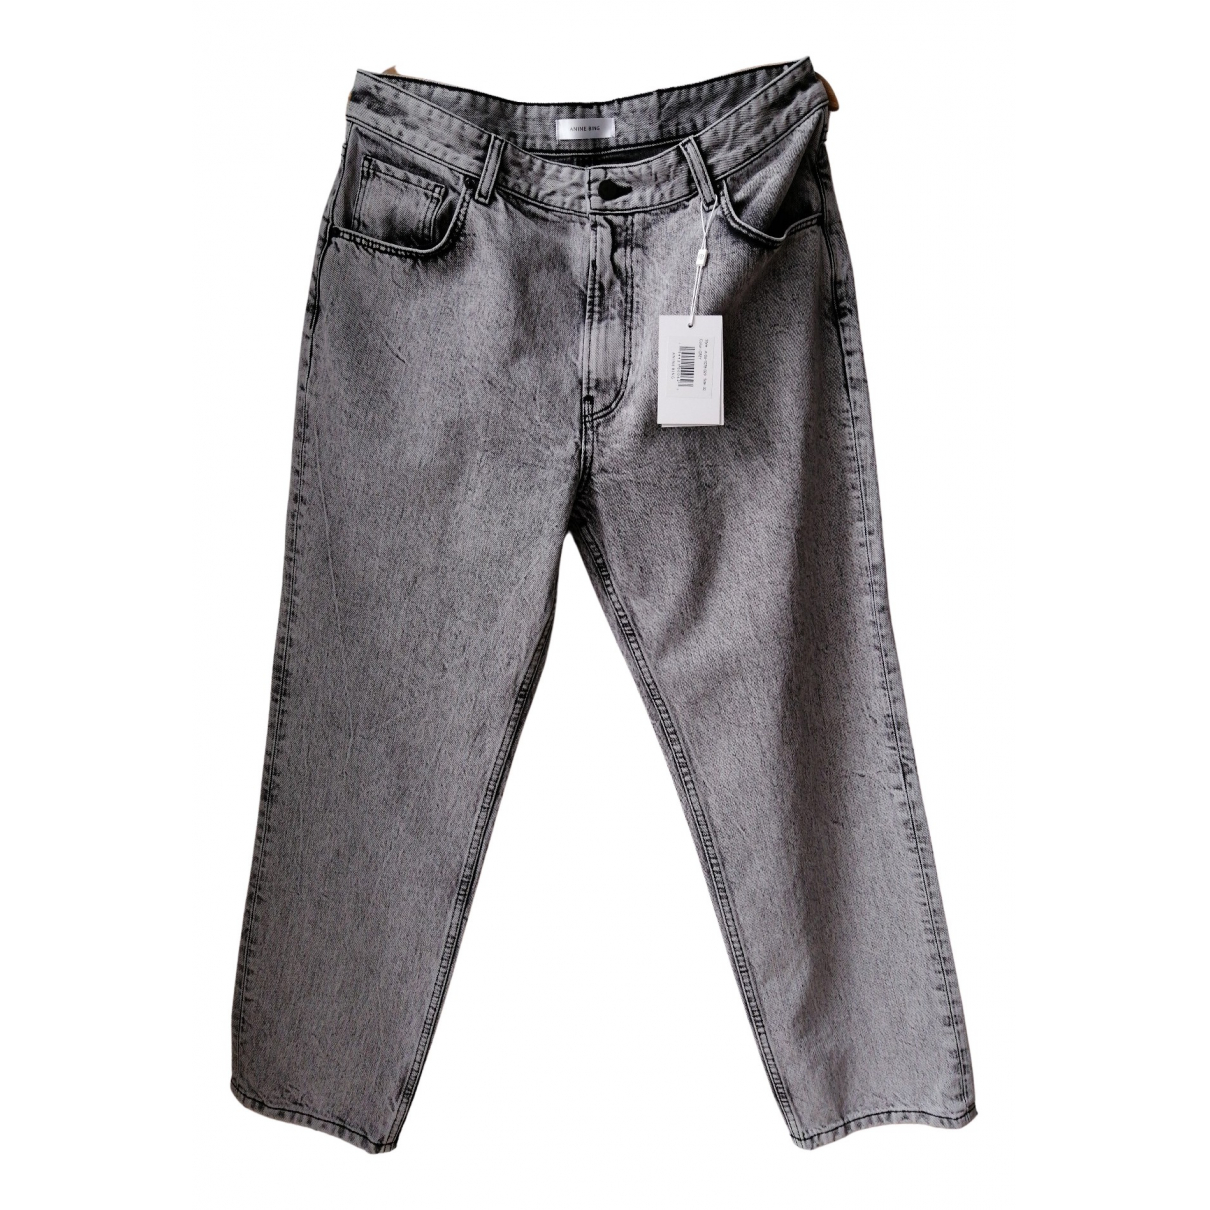 Anine Bing N Grey Cotton Jeans for Women 32 US